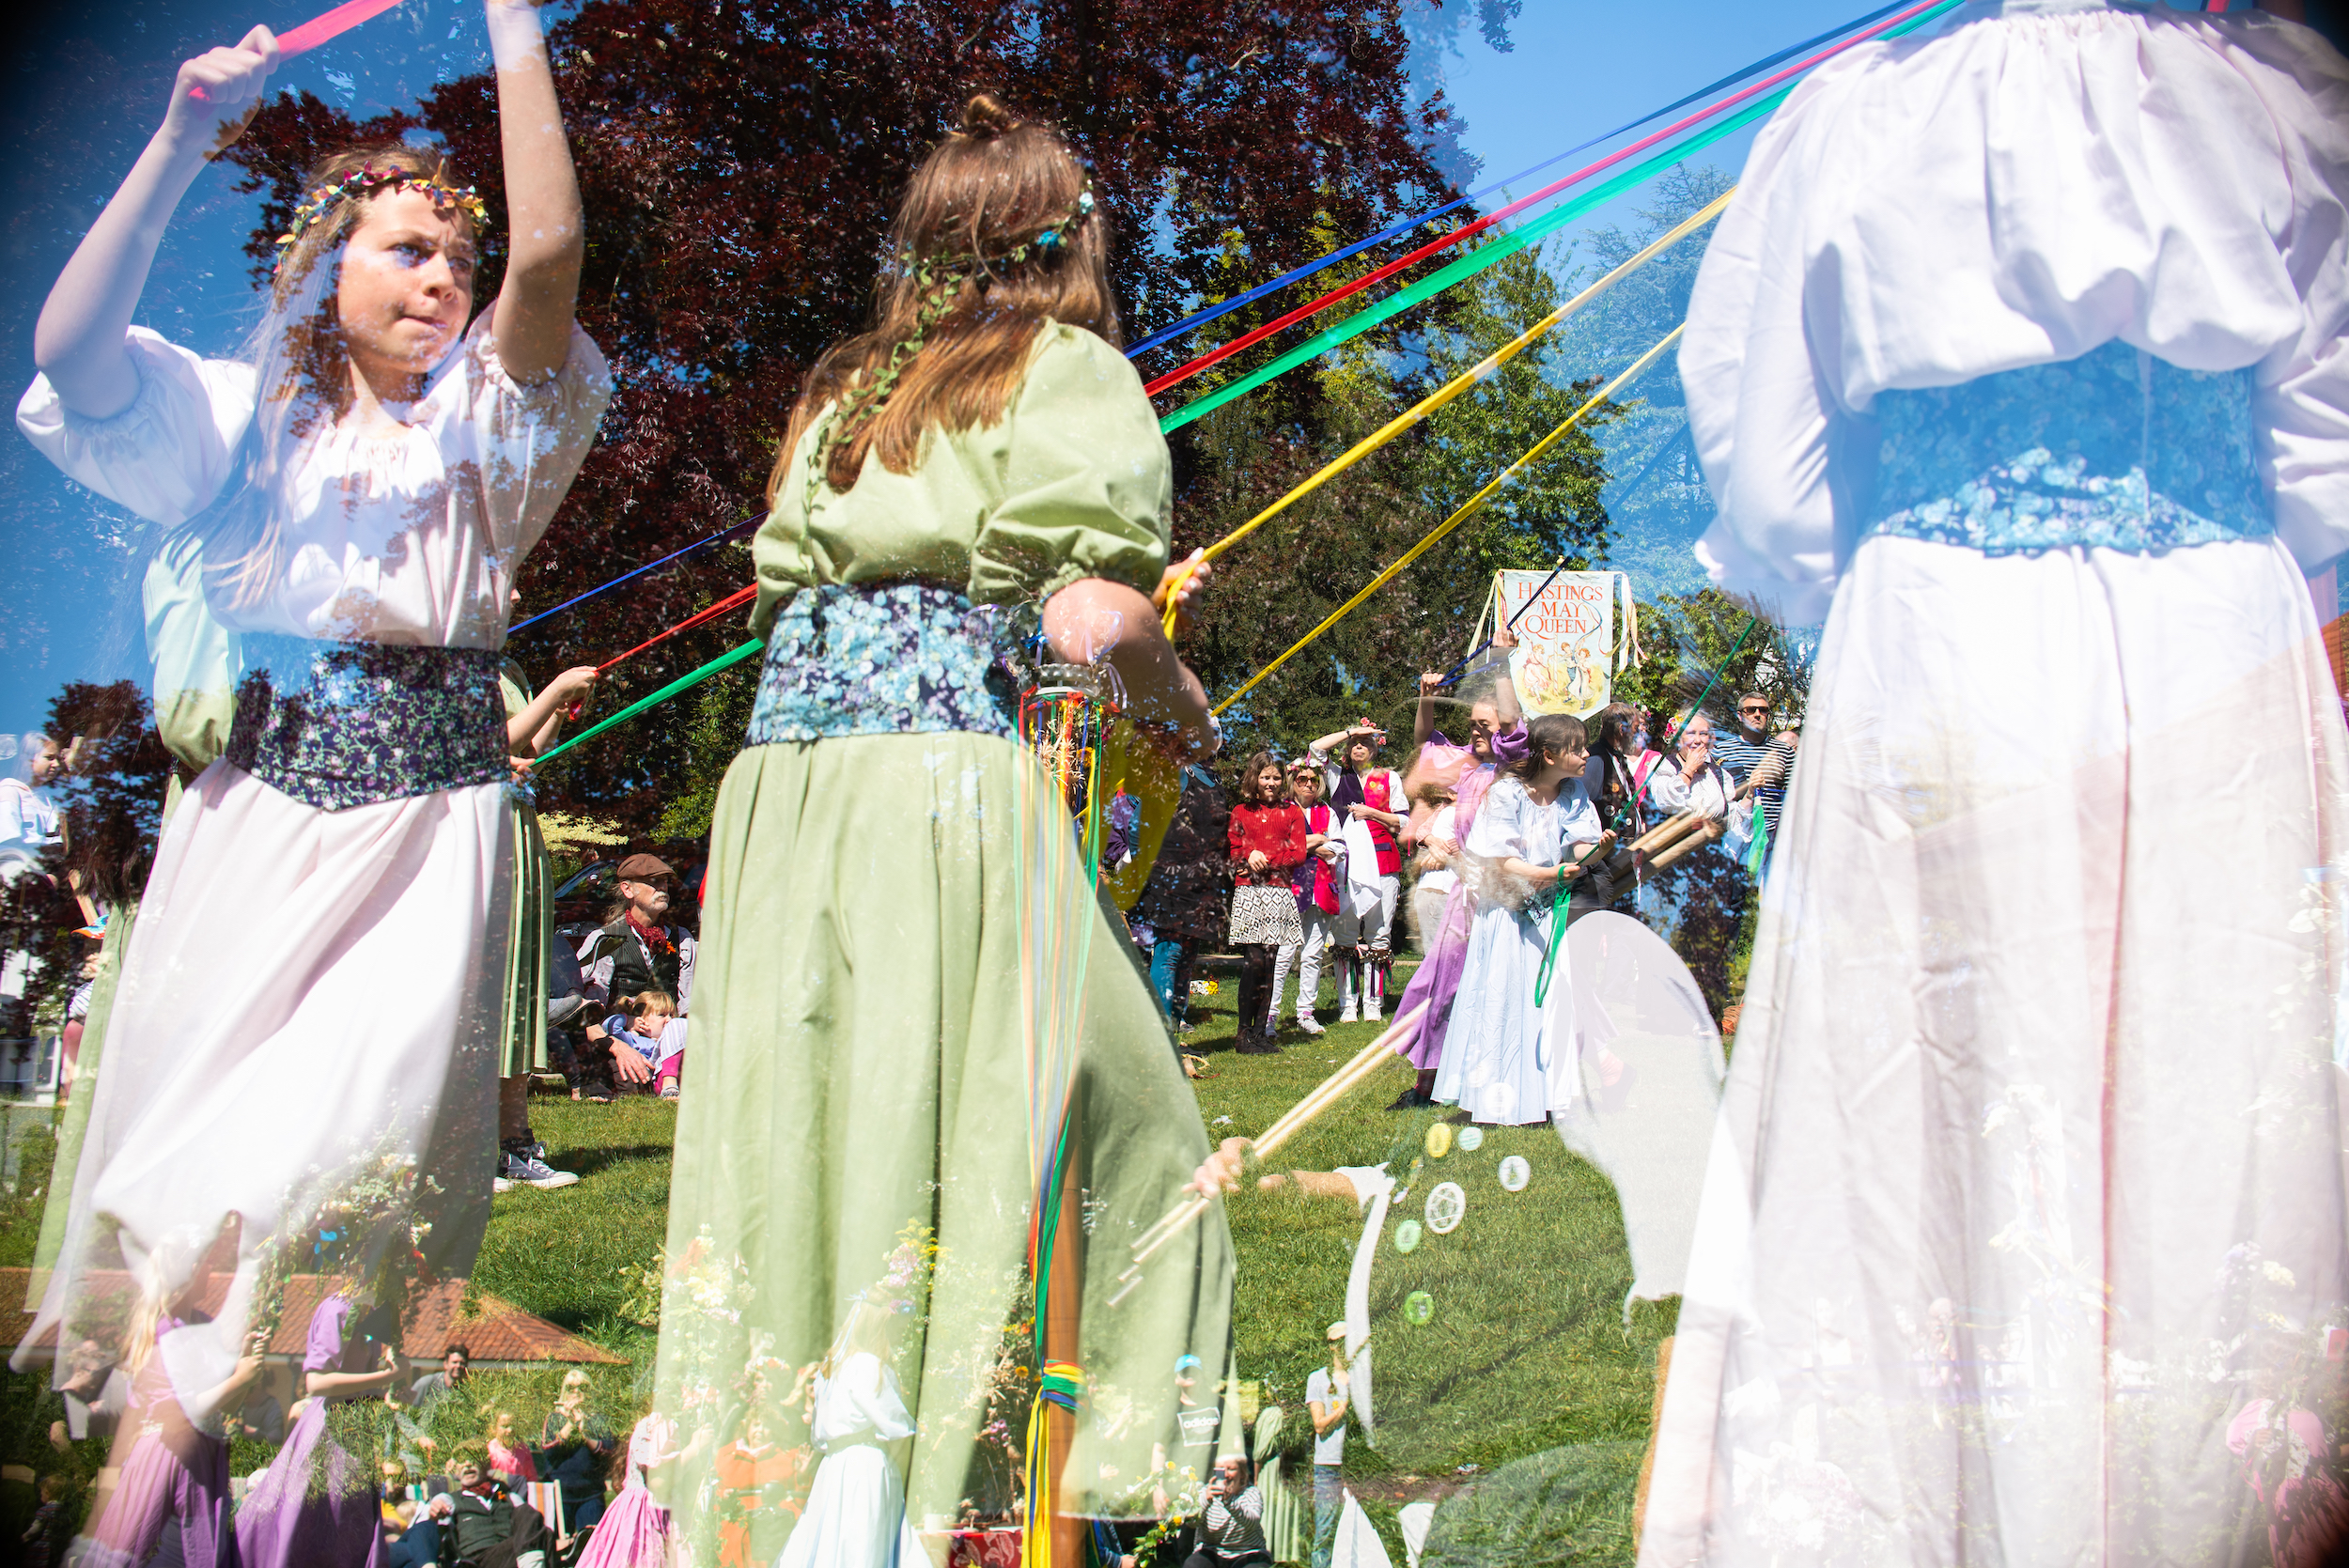 Double Exposure: May Pole Dancing